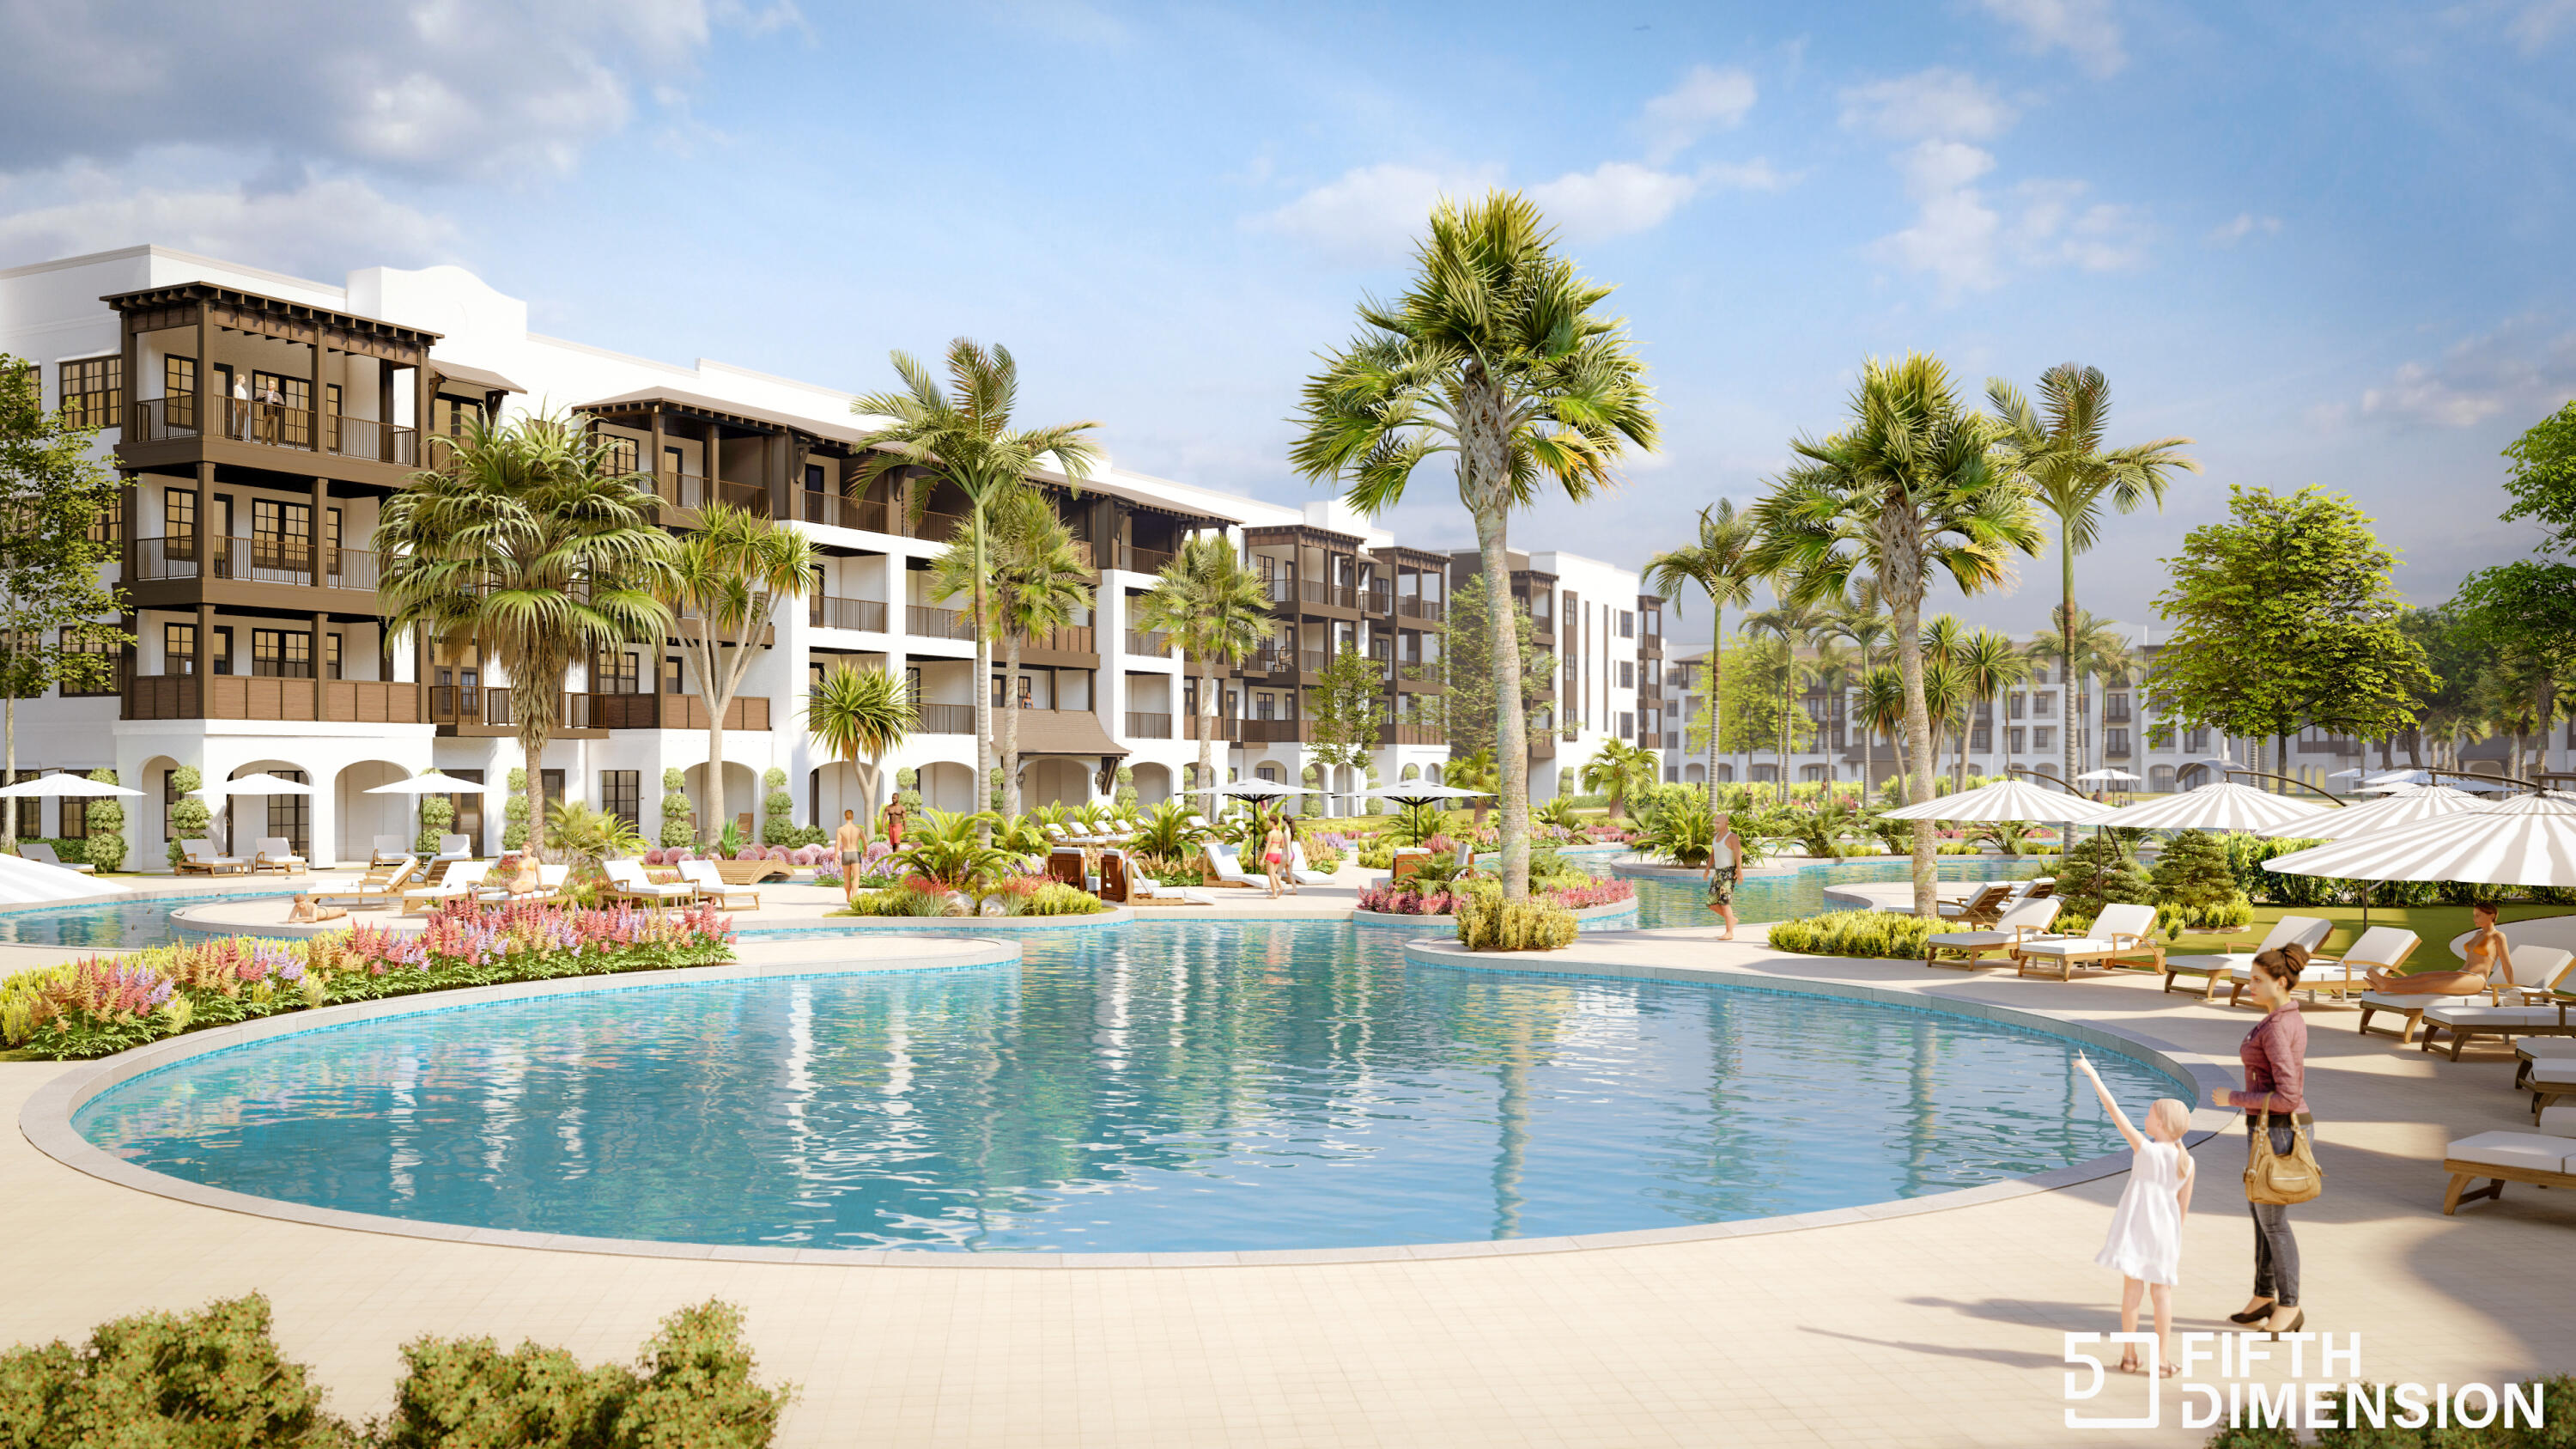 Introducing The Grove at Seascape, a gorgeous Mediterranean style resort that will be located within the popular Seascape Golf, Beach, & Tennis Resort in Miramar Beach.  Now is your opportunity to purchase these luxury one, two, three, and four bedroom pre-construction condominiums during the release of the first two buildings, the Holly and the Juniper.   The mid-rise four story condominiums will overlook the Aquatic Garden amenities featuring multiple pools including a relaxing lazy river, zero entry pool, and much more.  Order your seafood lunch and refreshing beverages with poolside delivery right to your lounge chair. The well-appointed interiors of The Grove at Seascape will provide an open concept floor plan and feature quartz countertops, 9-10 foot ceilings, white shaker cabinets, Bosch appliances, luxury vinyl plank and porcelain flooring and a rare gem for a condo, a spa like master bathroom with soaking tub.  Upgraded finishes and appliances are available.  The Seascape Golf, Beach and Tennis Resort features an expansive 2000 feet of white sand beach just a short walk or golf cart ride away. When not on the beach enjoy all the amenities the Seascape Resort has to offer including onsite golf, tennis, shopping, and multiple onsite restaurants including the popular Whales Tail and Mezcal Mexican Grill.   Don't miss this opportunity to own your own slice of beach paradise!